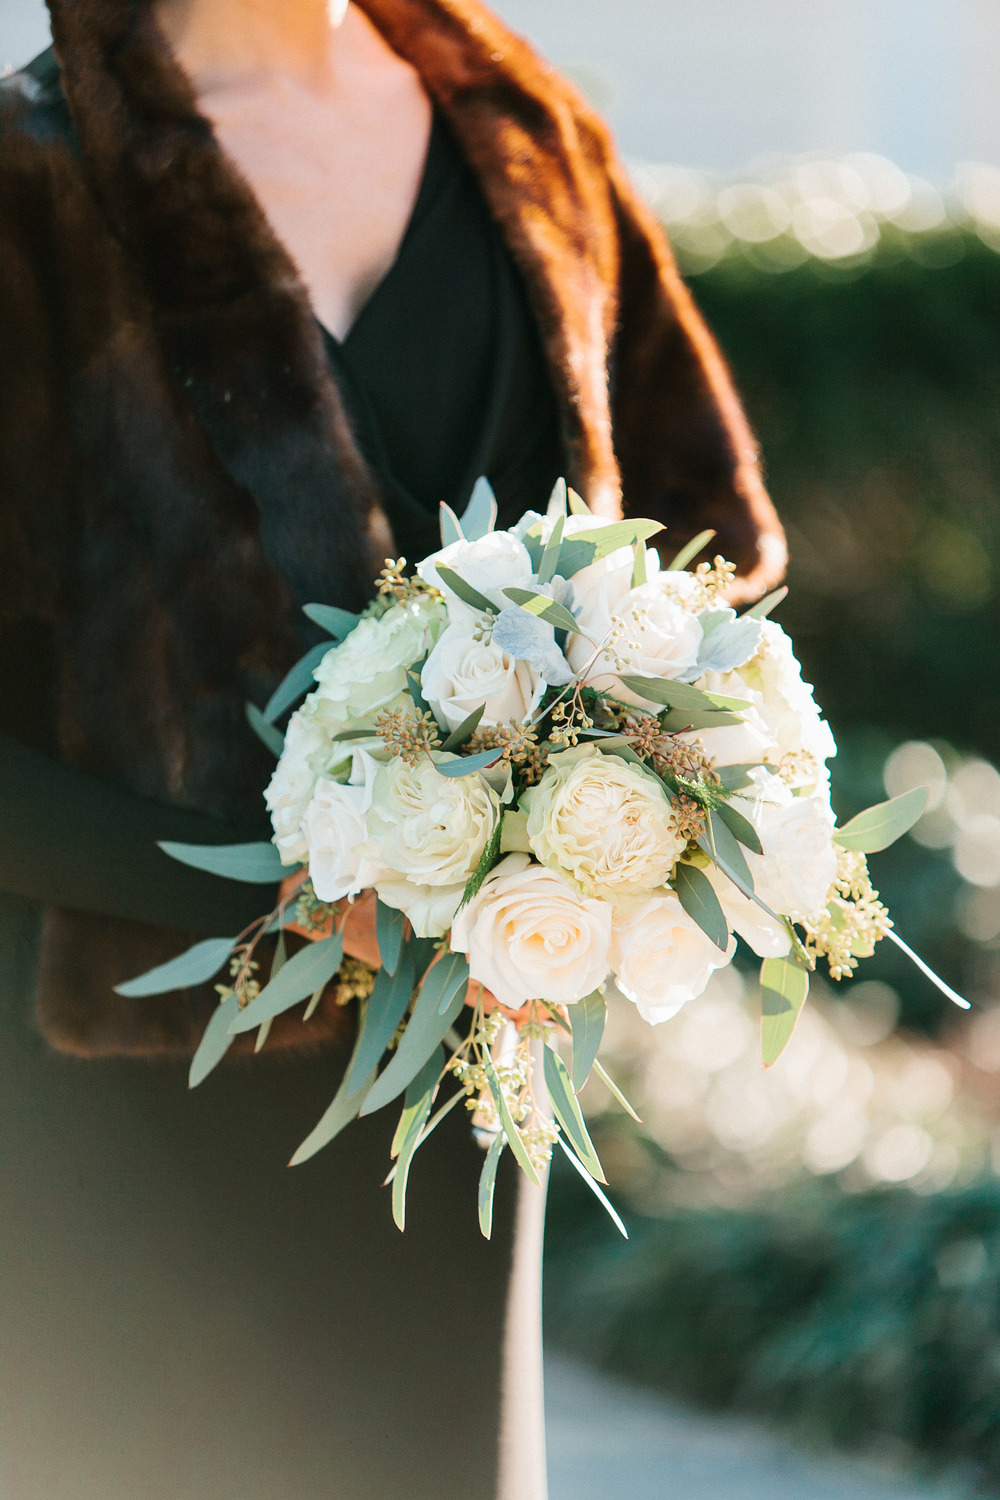 White rose and eucalyptous bouquet at Georgia wedding